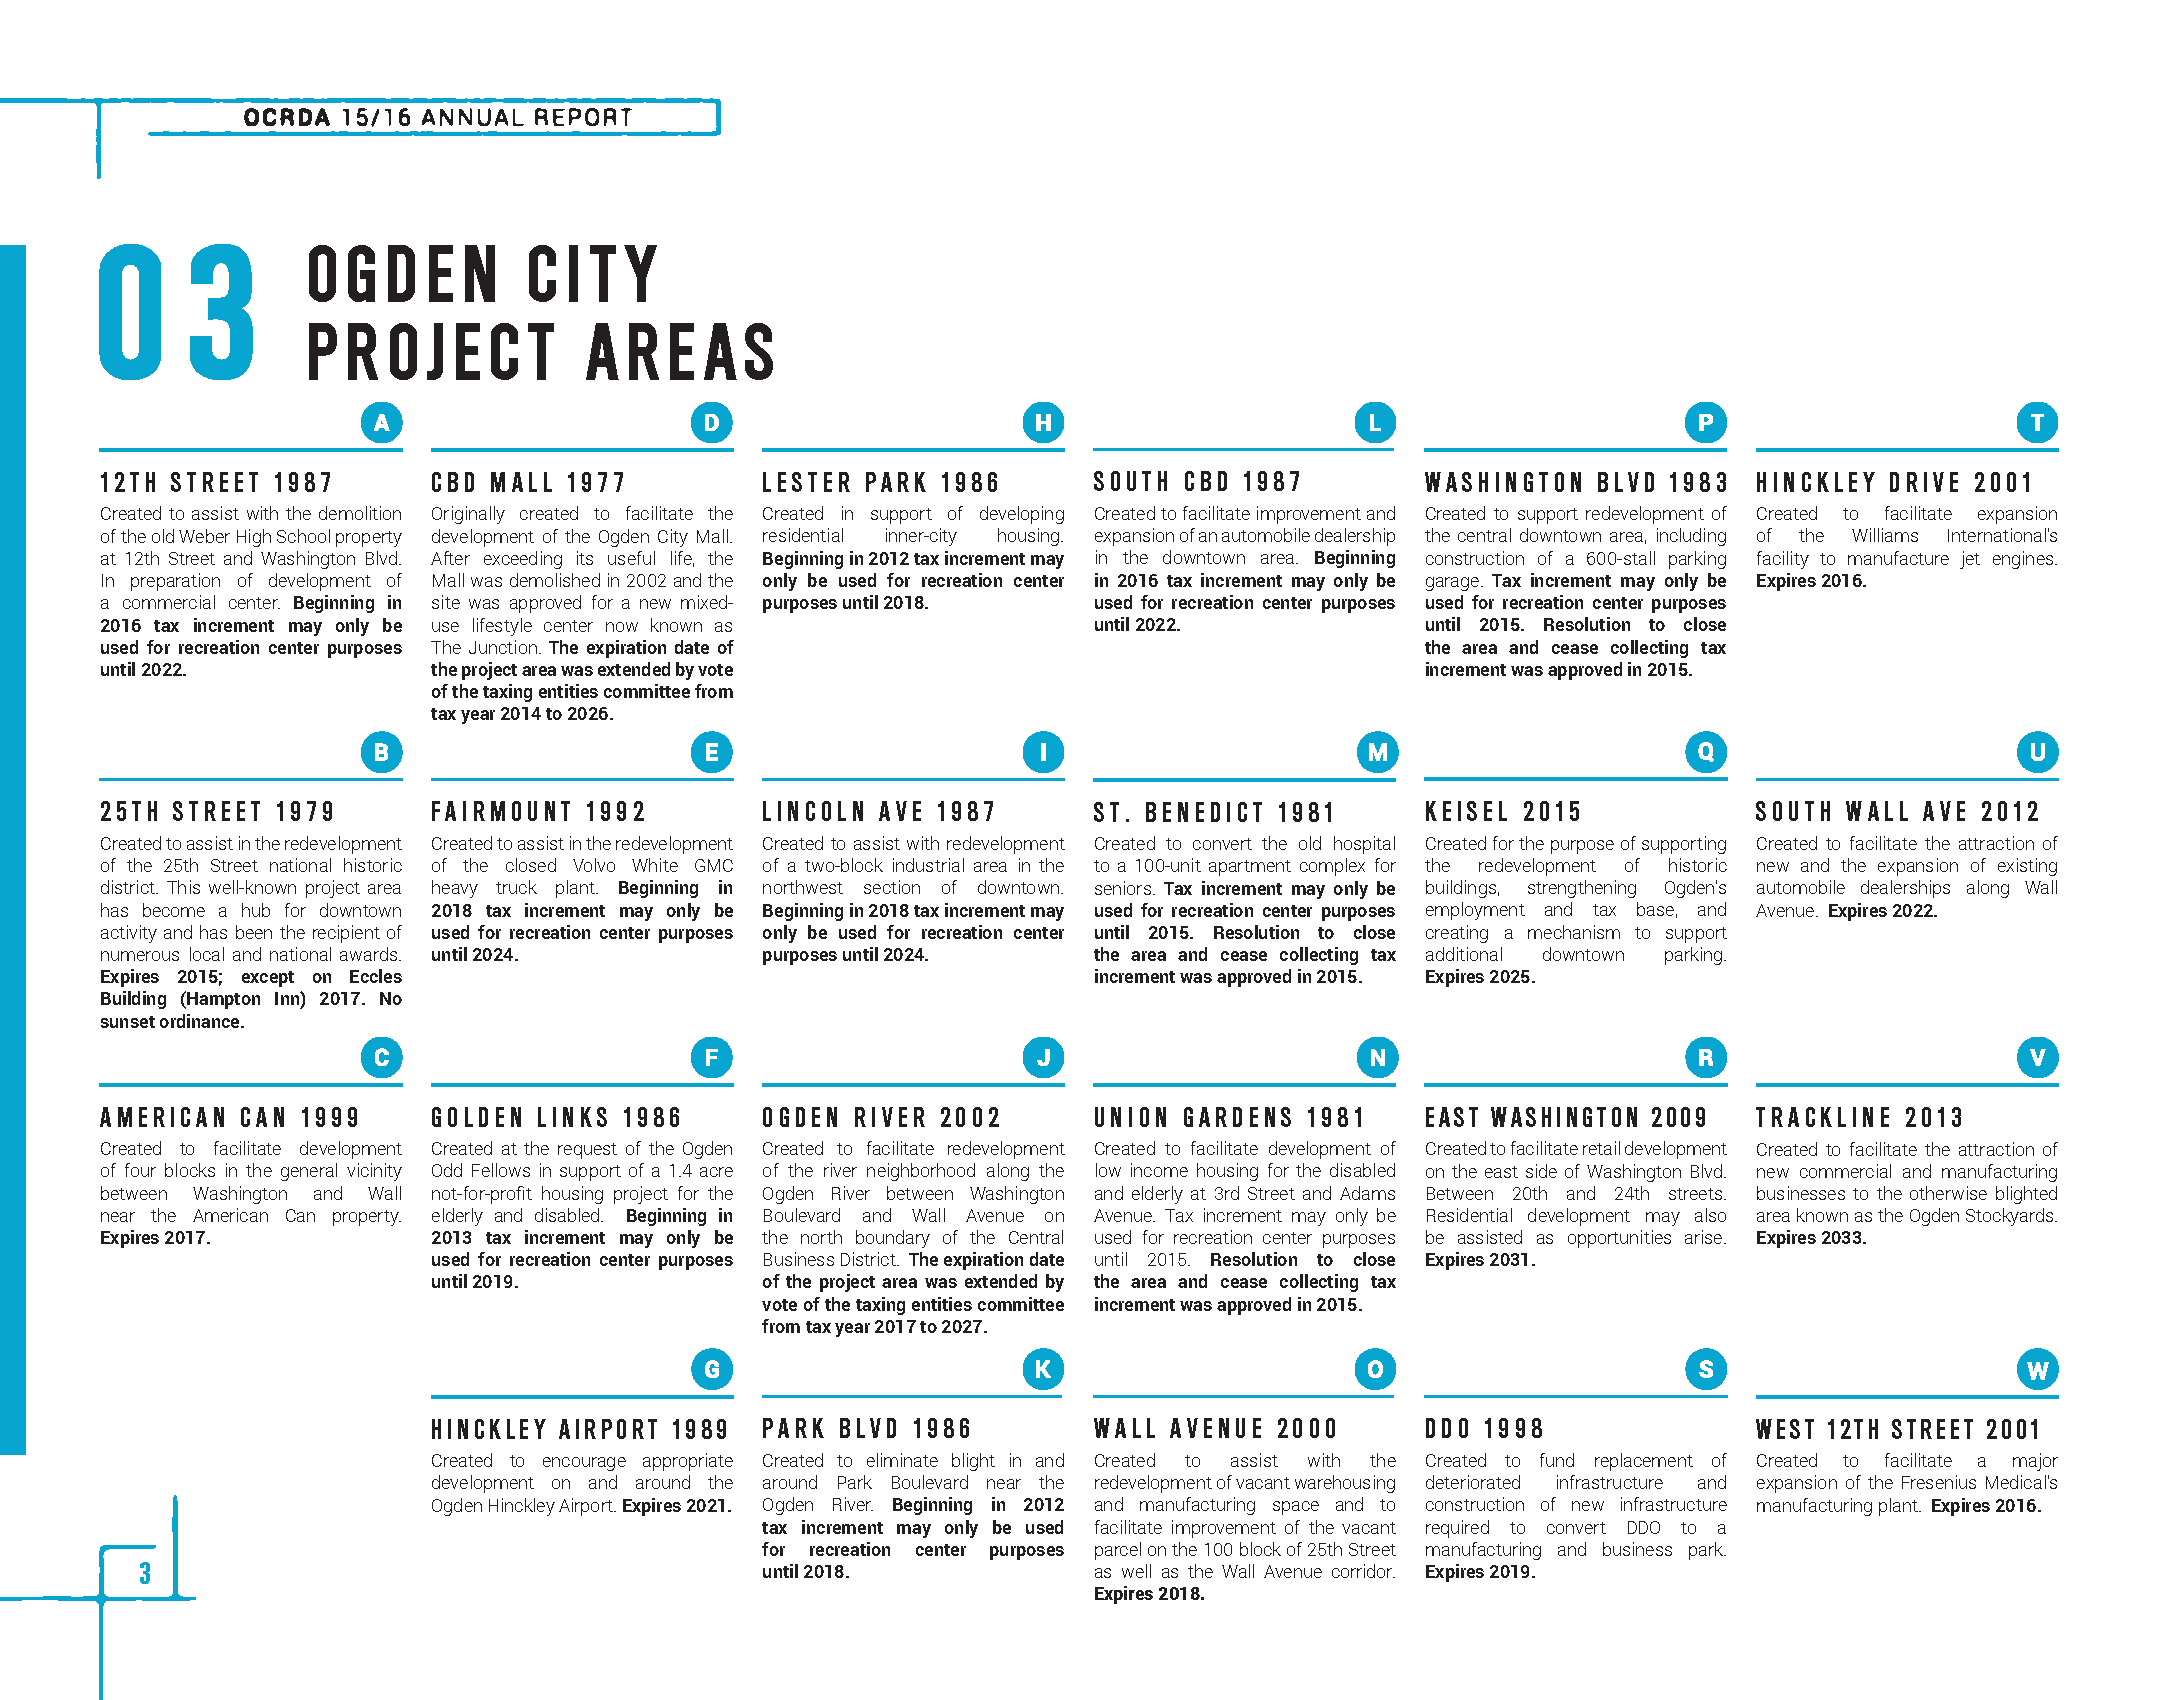 Ogden City Project Areas